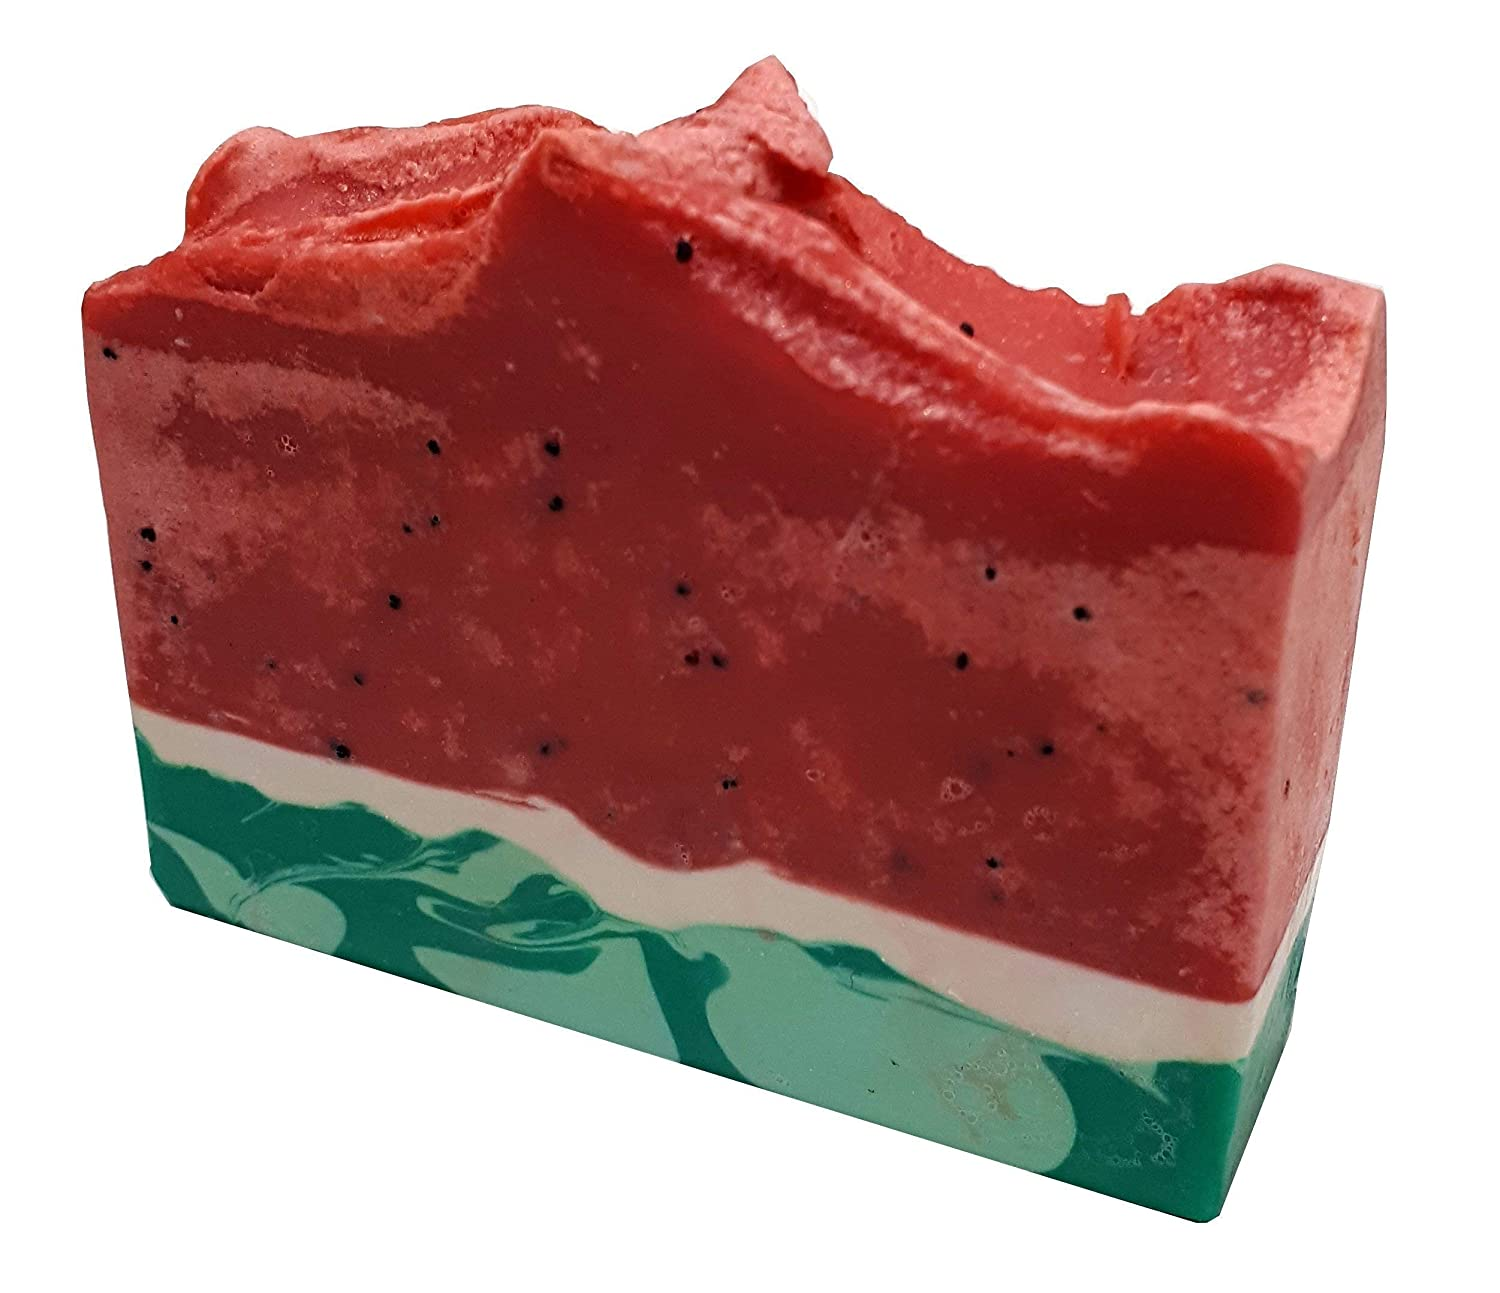 Handmade Watermelon Artisan Soap Bar 5oz - All Natural Soap- Vegan Soap made from Organic Ingredients scented with Watermelon Fragrance Oil by Rooty Culture